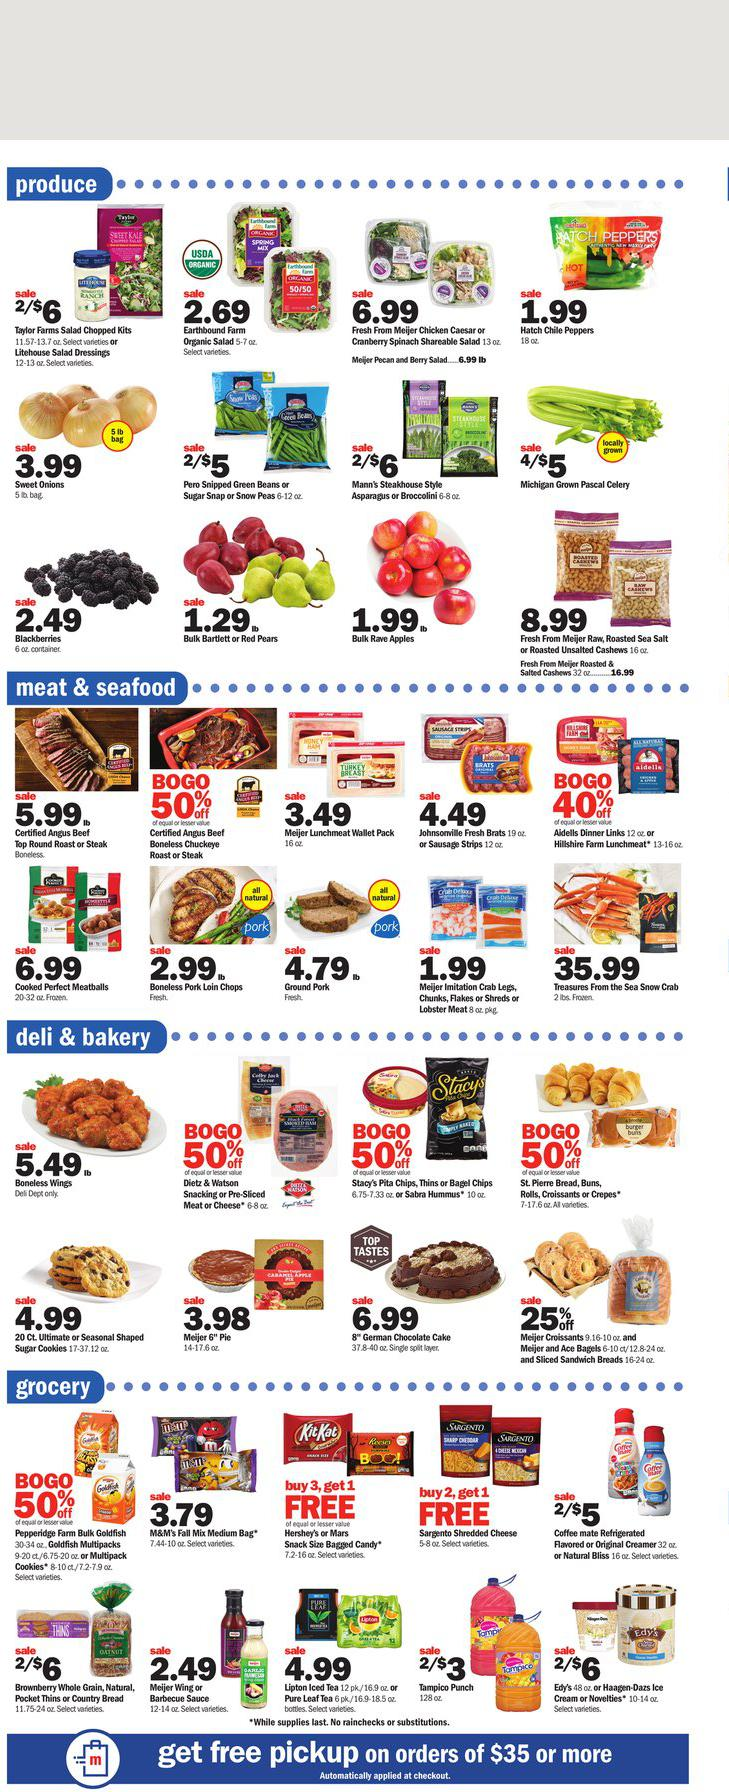 12.09.2021 Meijer ad 3. page